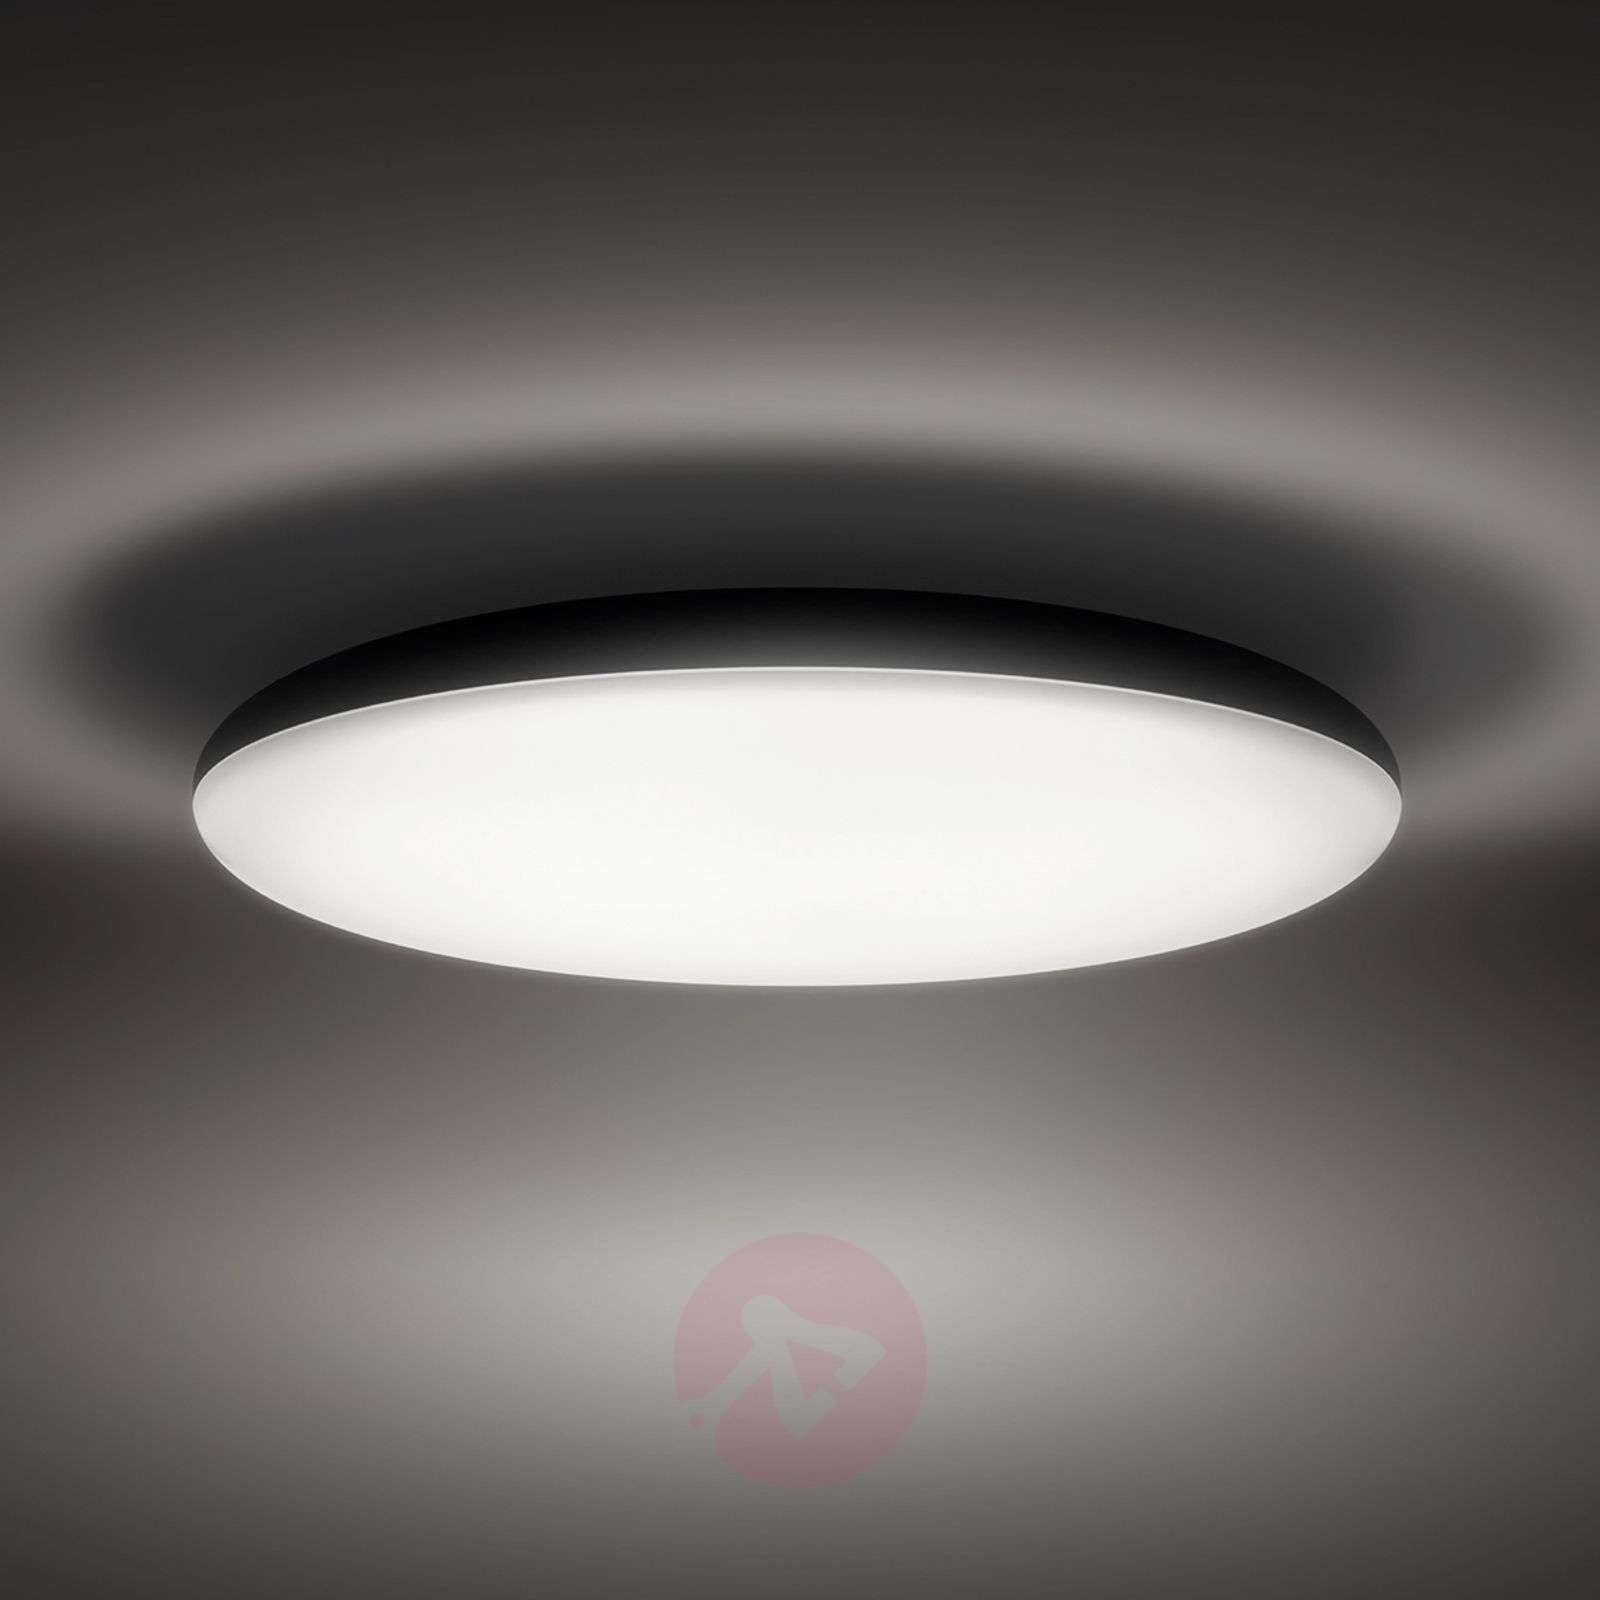 Philips Hue White Ambiance Cher ceiling light-7532056-01